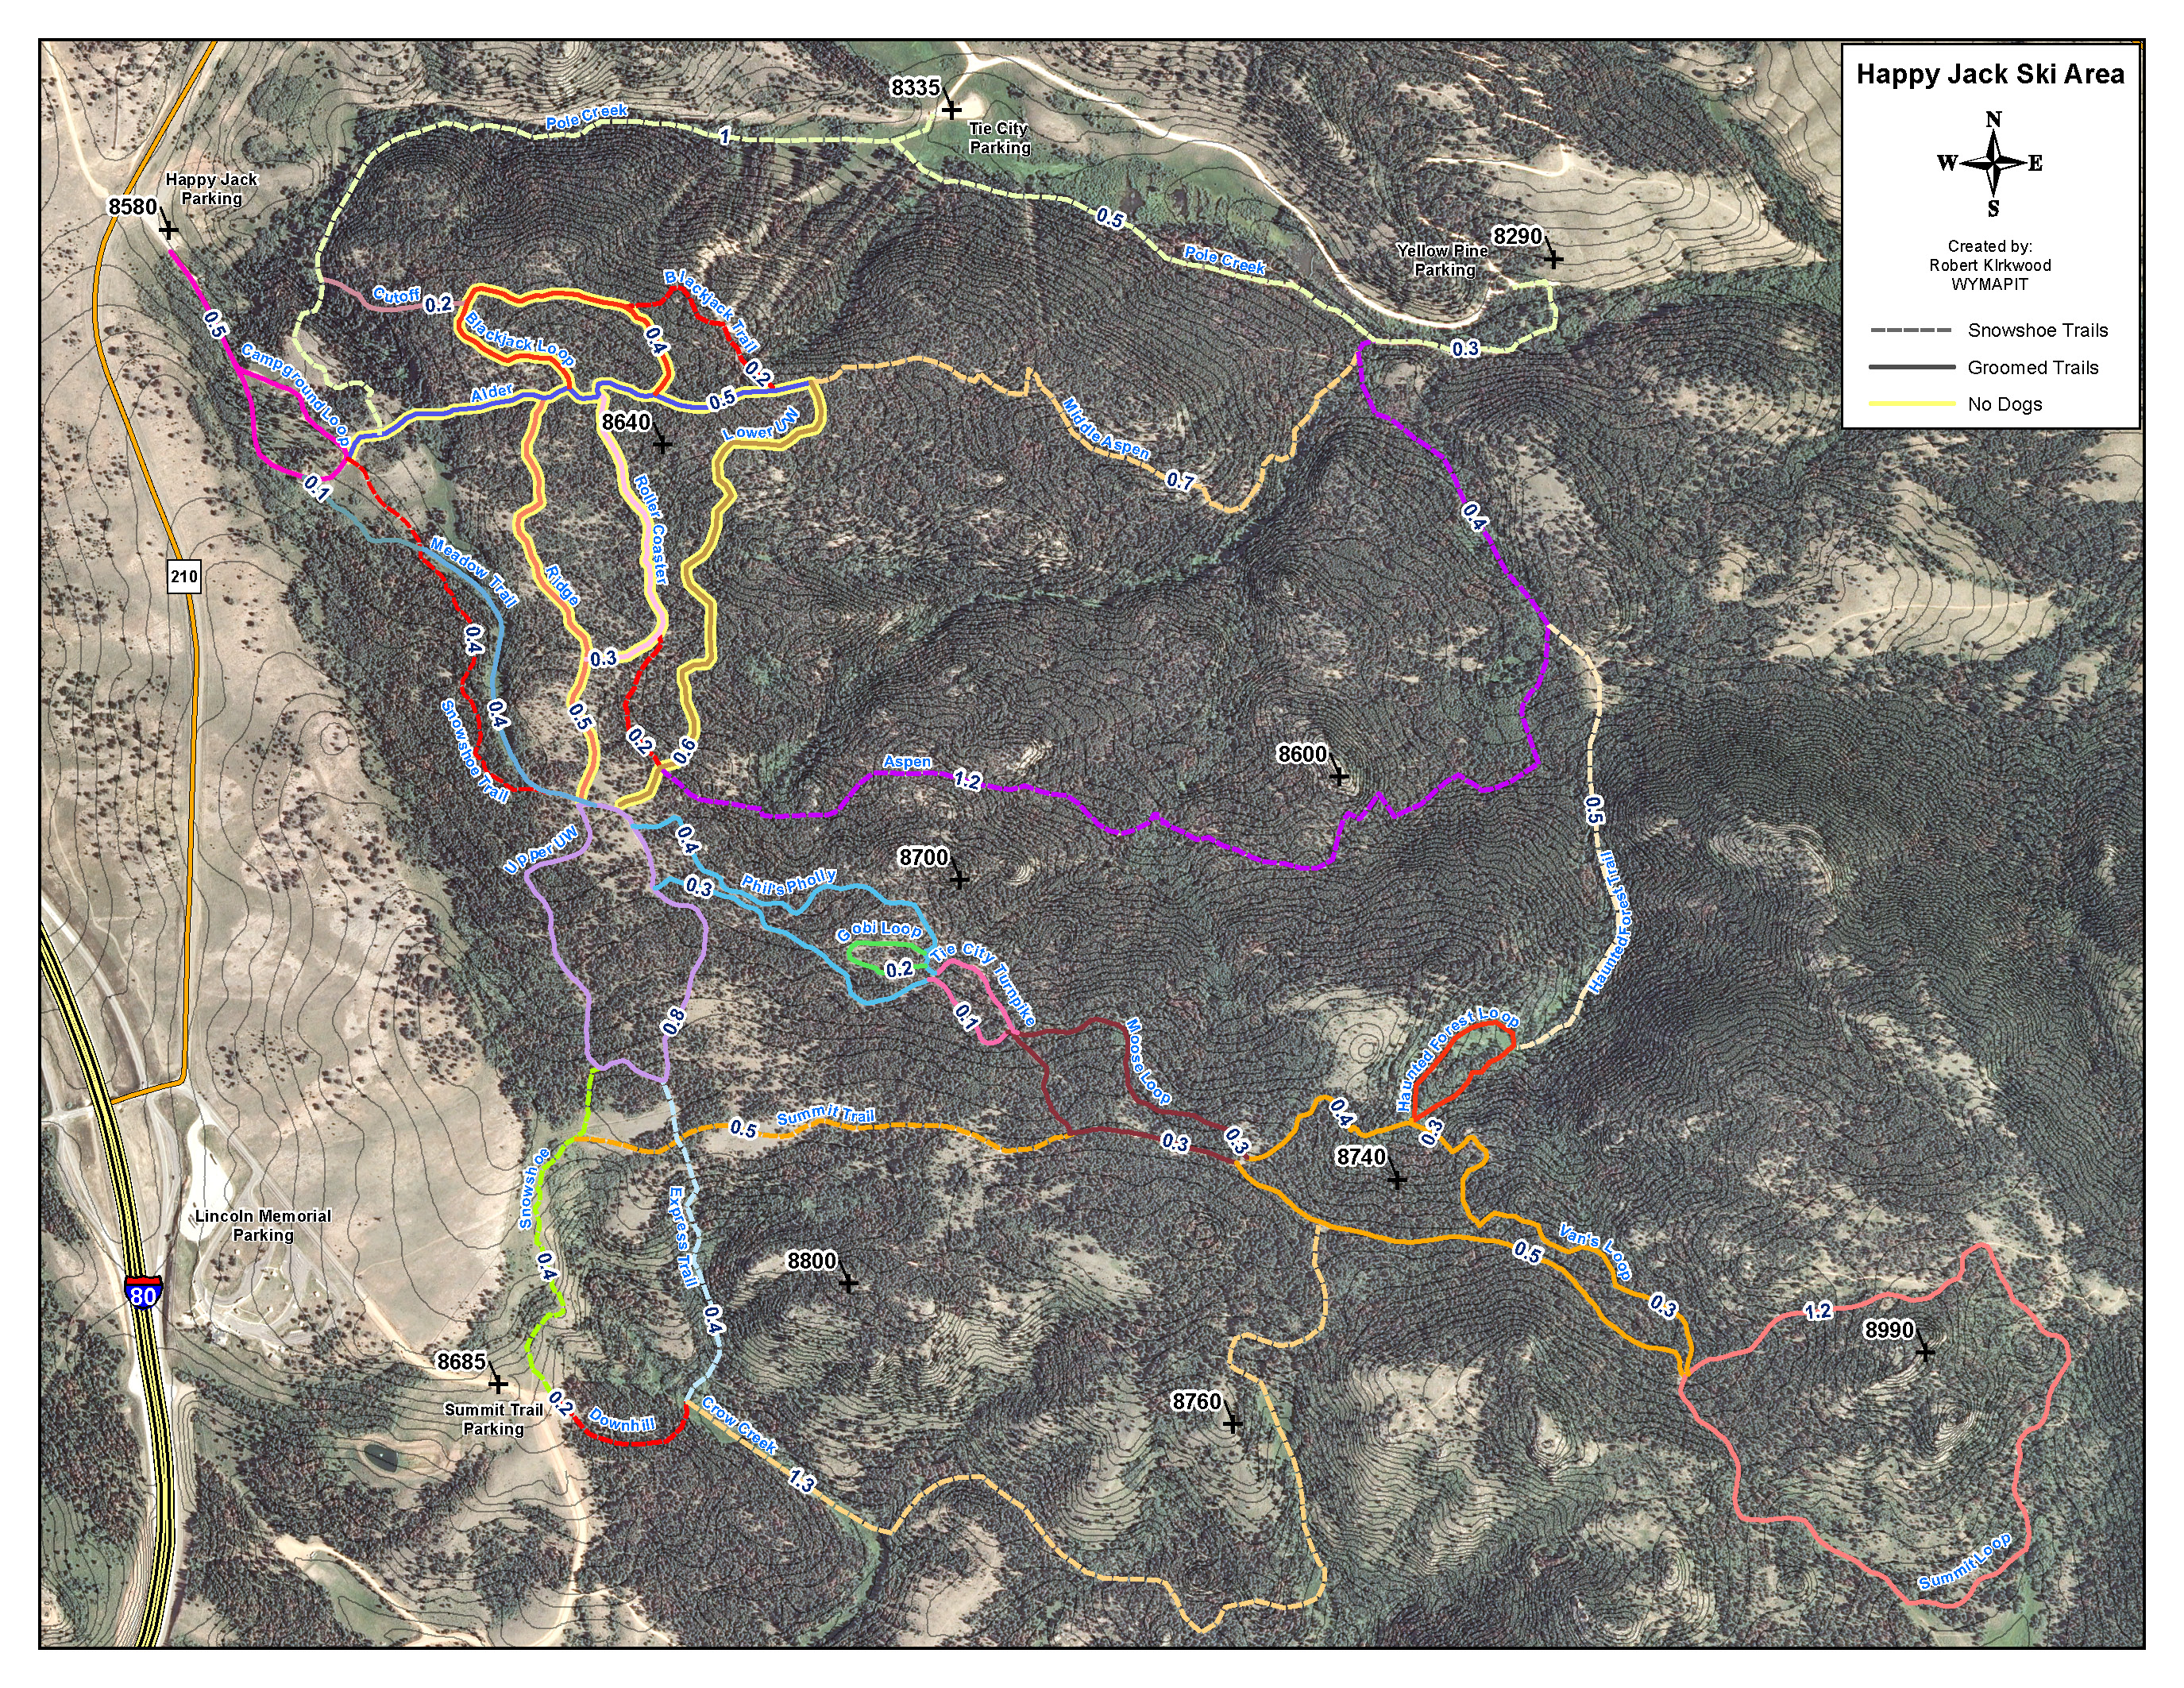 Ski Areas In Wyoming Map.Happy Jack Pole Mt Snow Conditions In Se Wyoming Laramie Wyoming